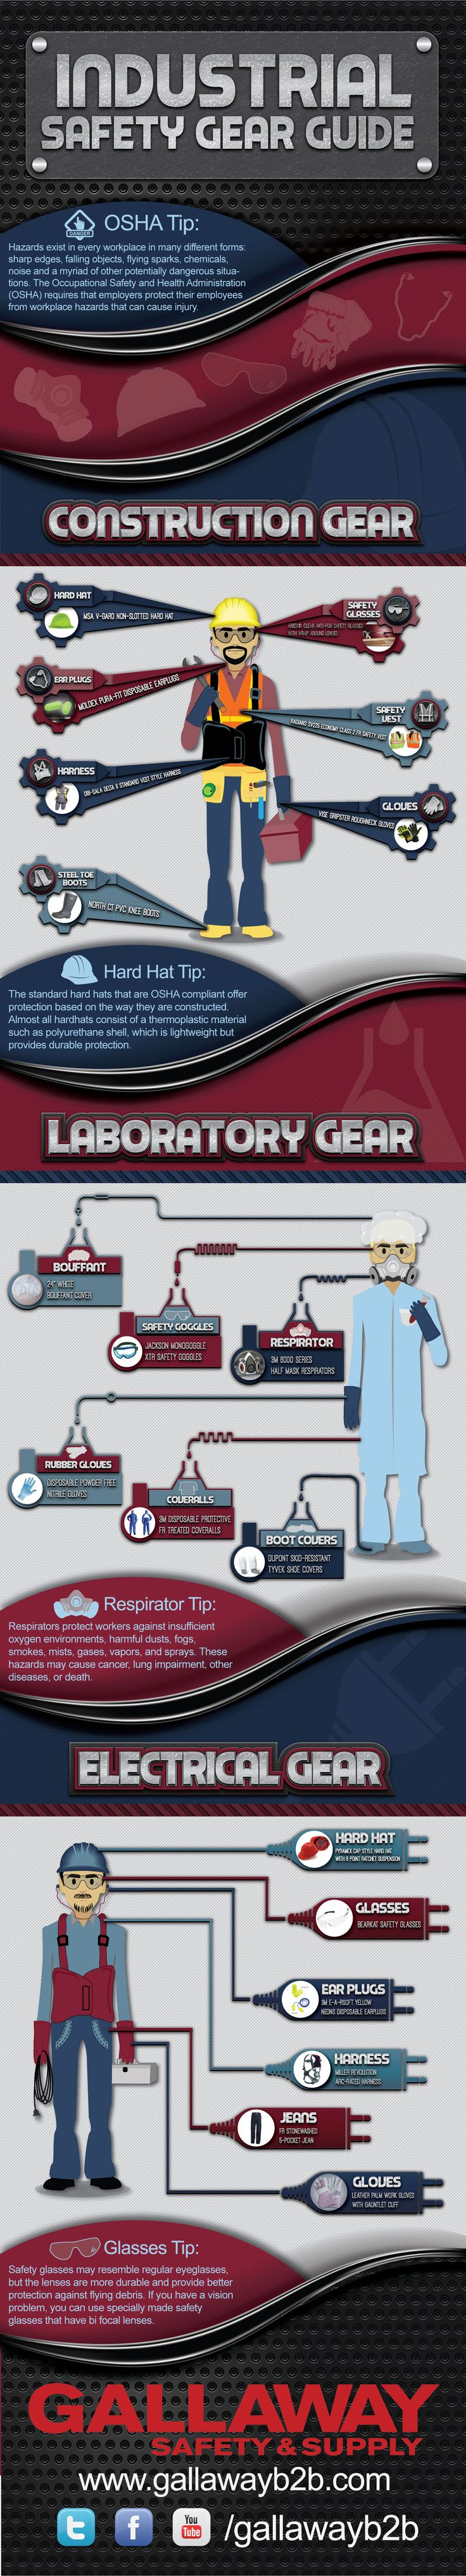 With this infographic, find out more about the types of equipment construction workers, lab technicians, and electricians wear to protect themselves in dangerous environments. Visit http://blog.gallawayb2b.com/infographic-industrial-safety-guide/